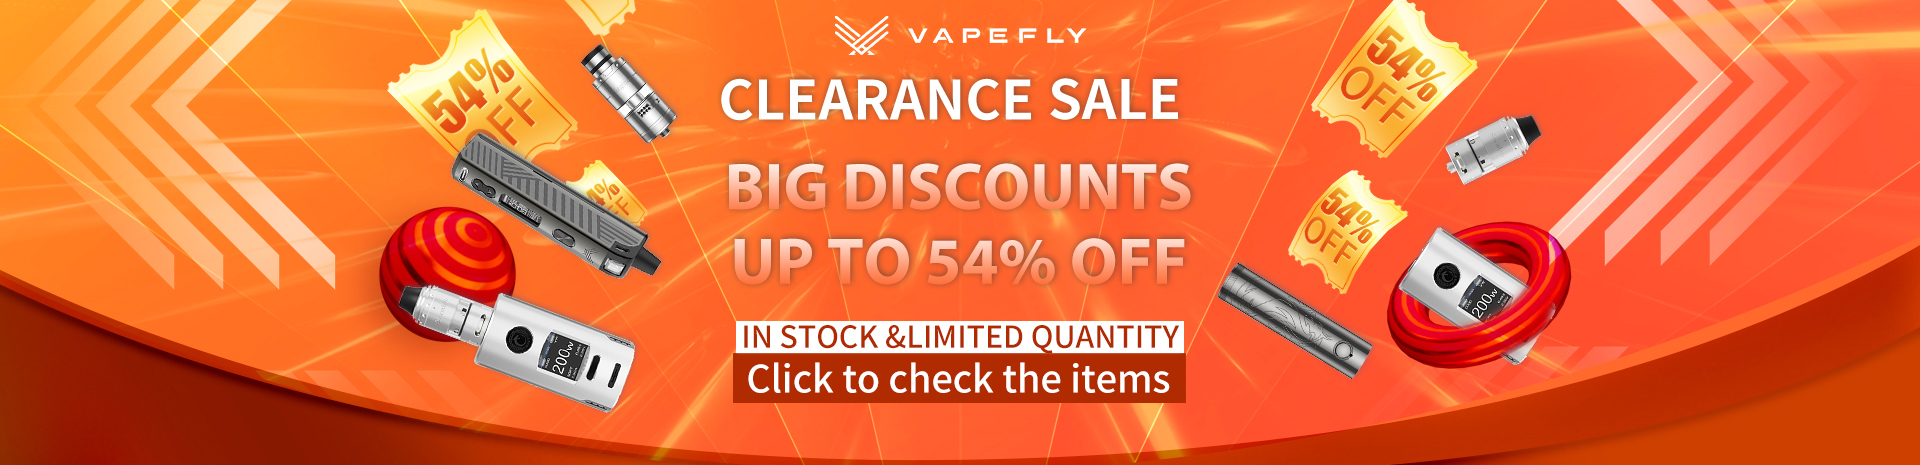 2021 Vapefly Clearance Sale Banner